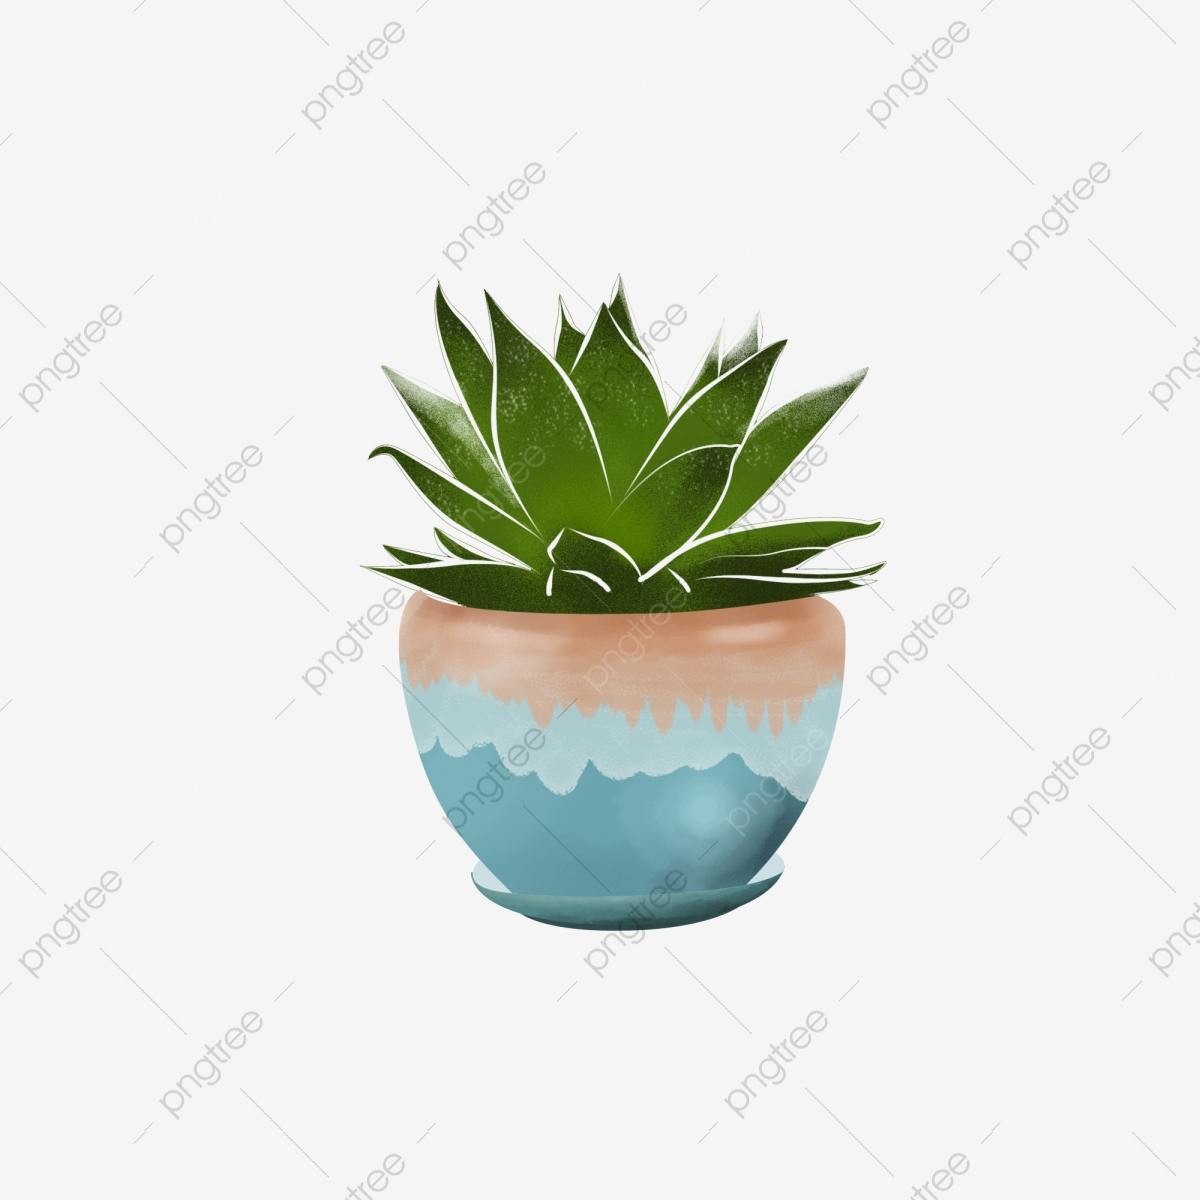 Succulent Potted Hand Drawn Fleshy Plant Potted Png Transparent Clipart Image And Psd File For Free Download